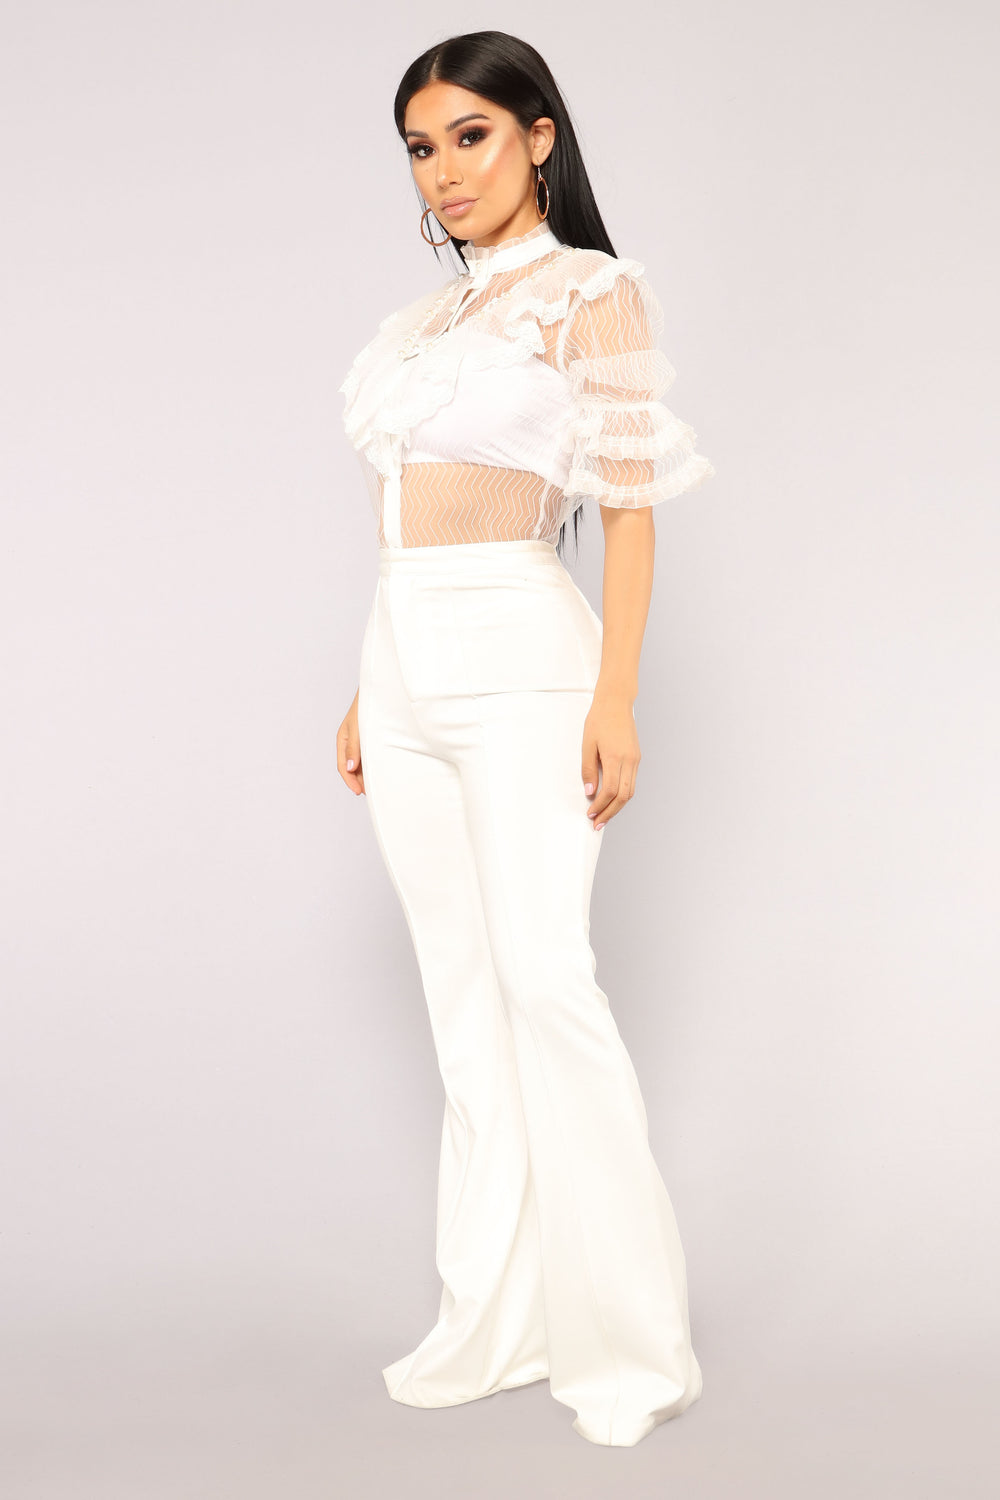 Not Meshing With You Top - White